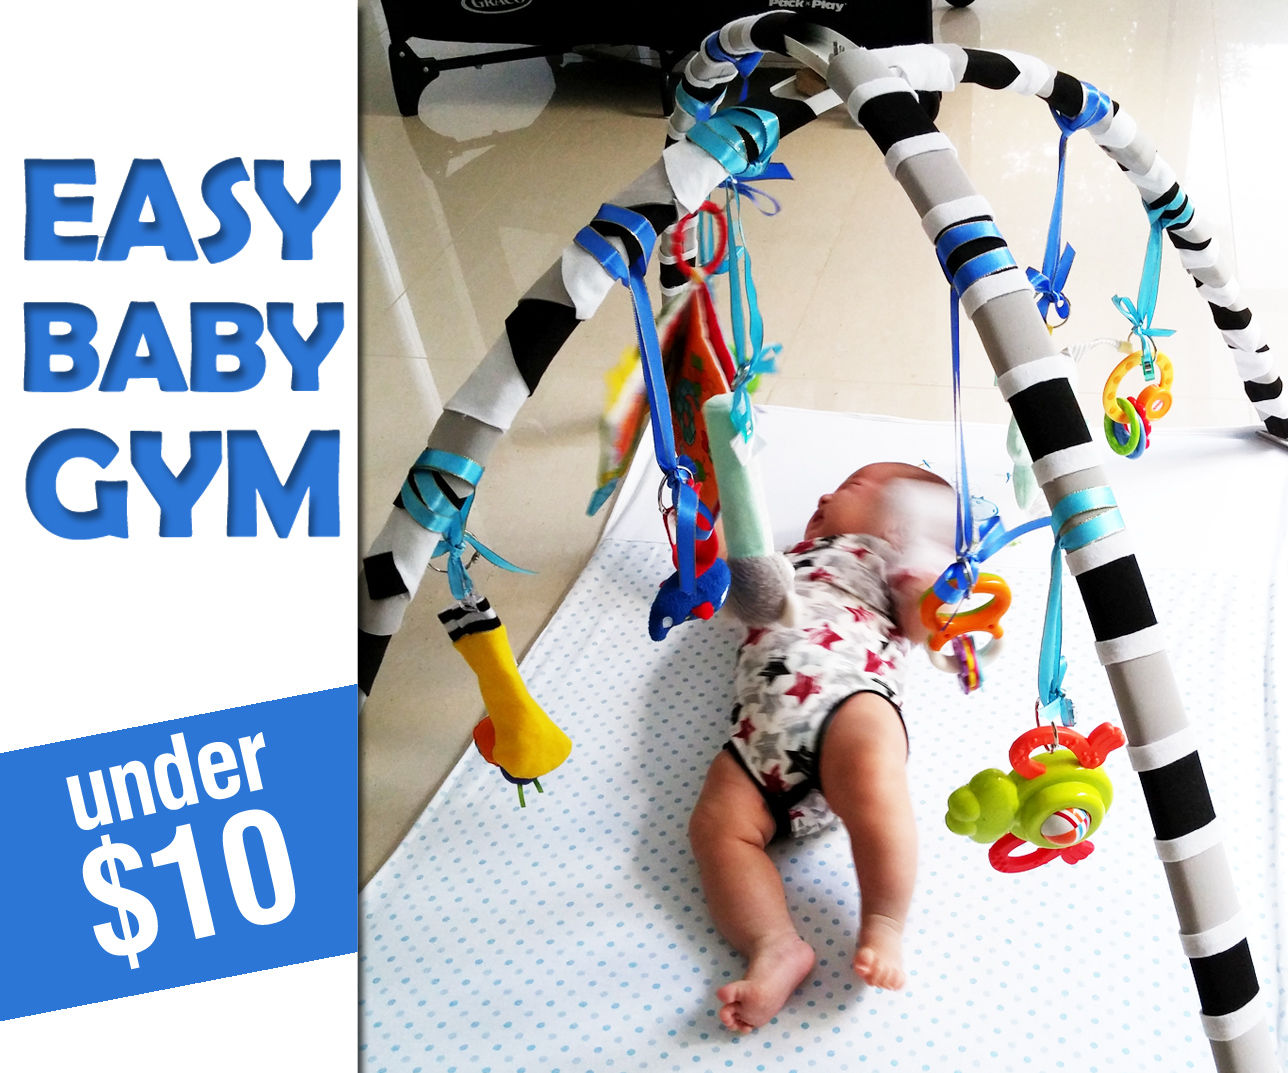 Cheap & Easy Baby Gym - Adjustable Mobile for Play Mats & Cribs